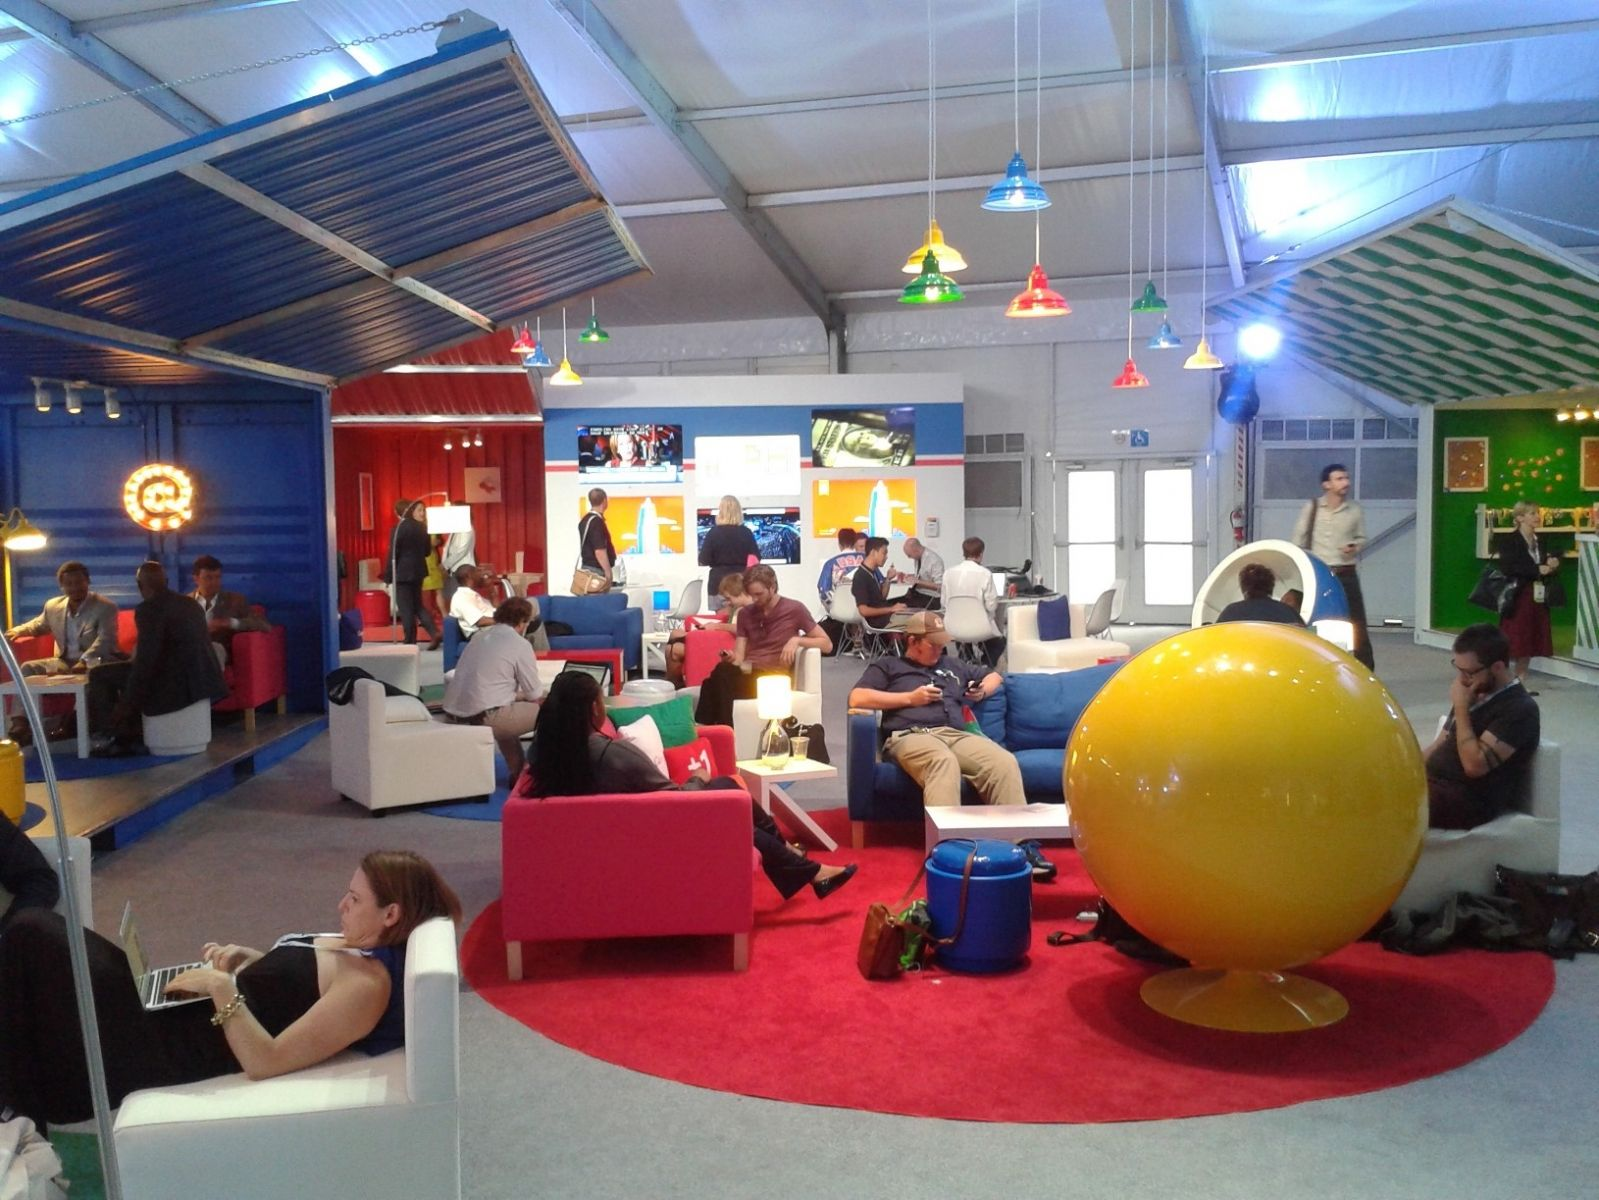 Themed functional spaces.